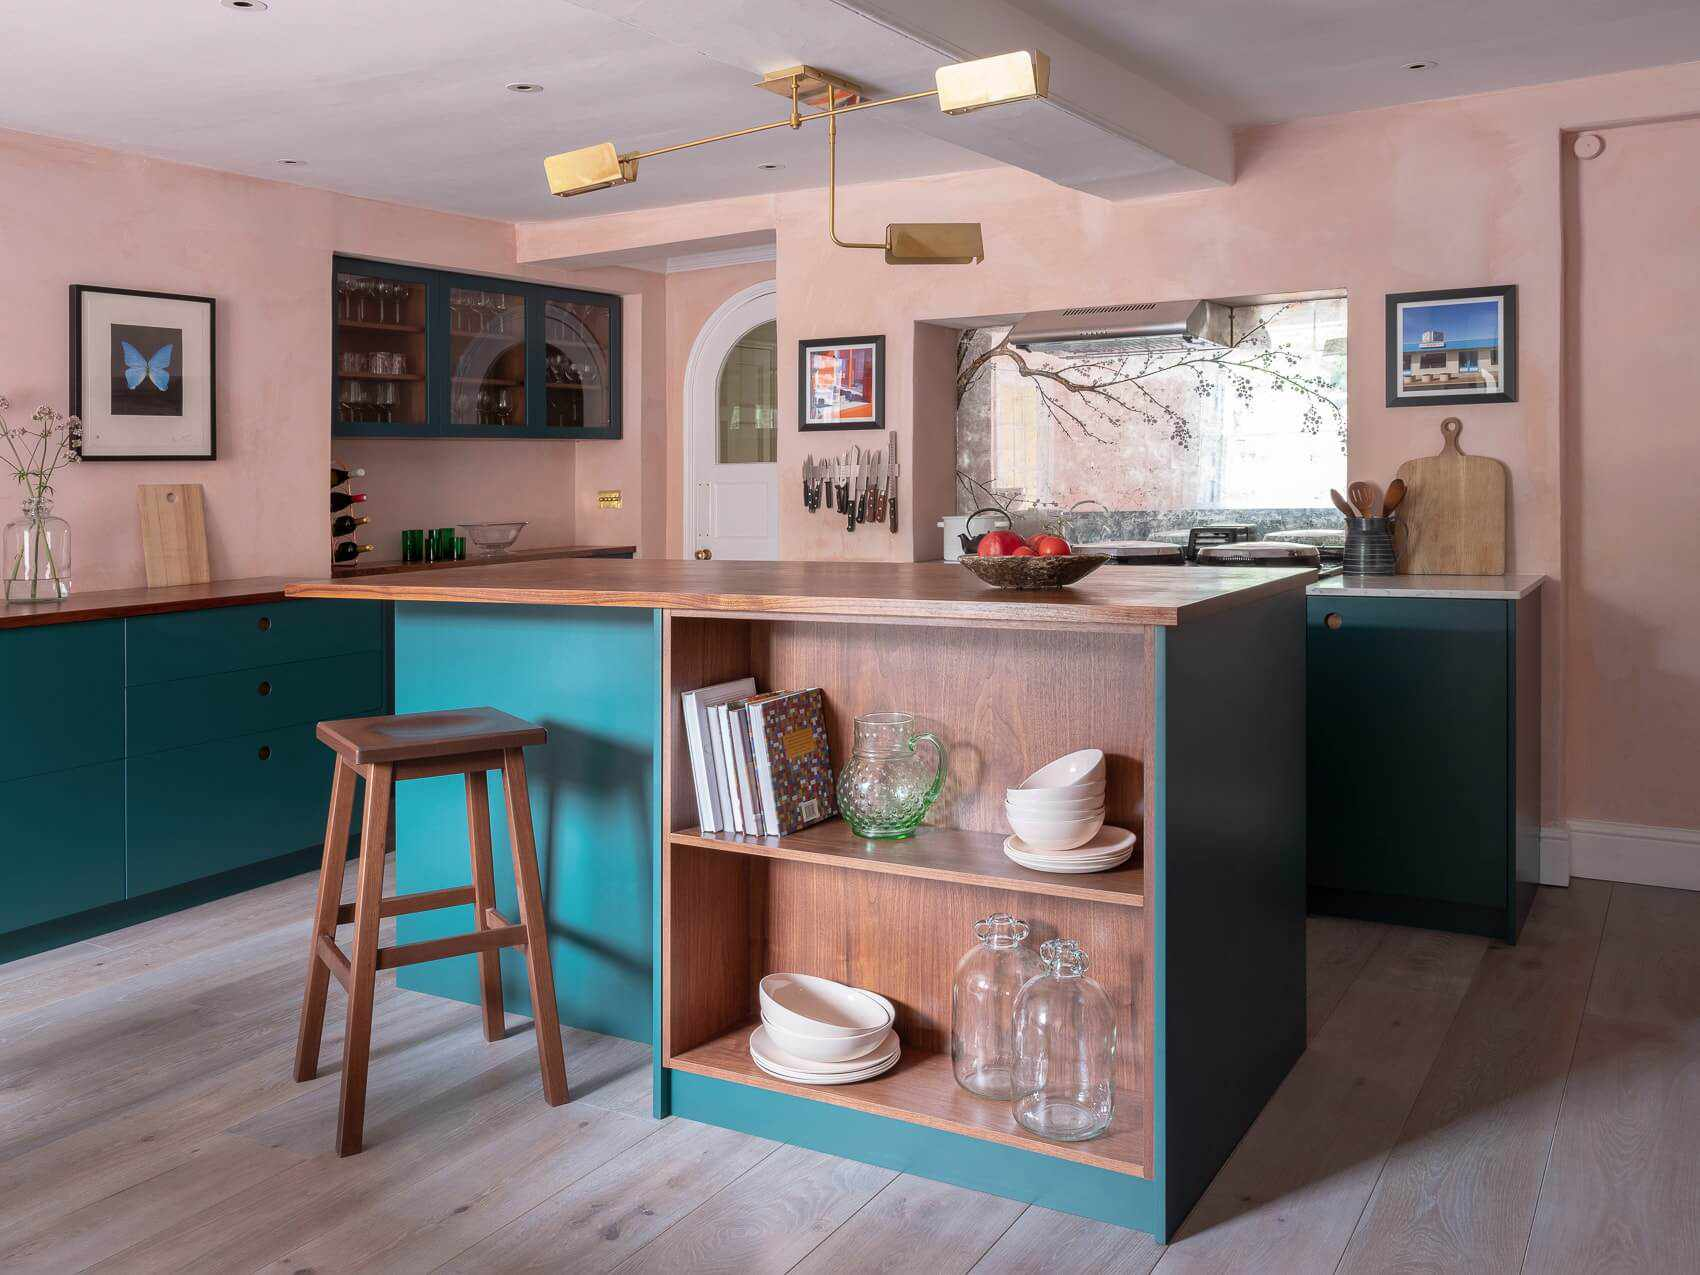 Teal and pink kitchen